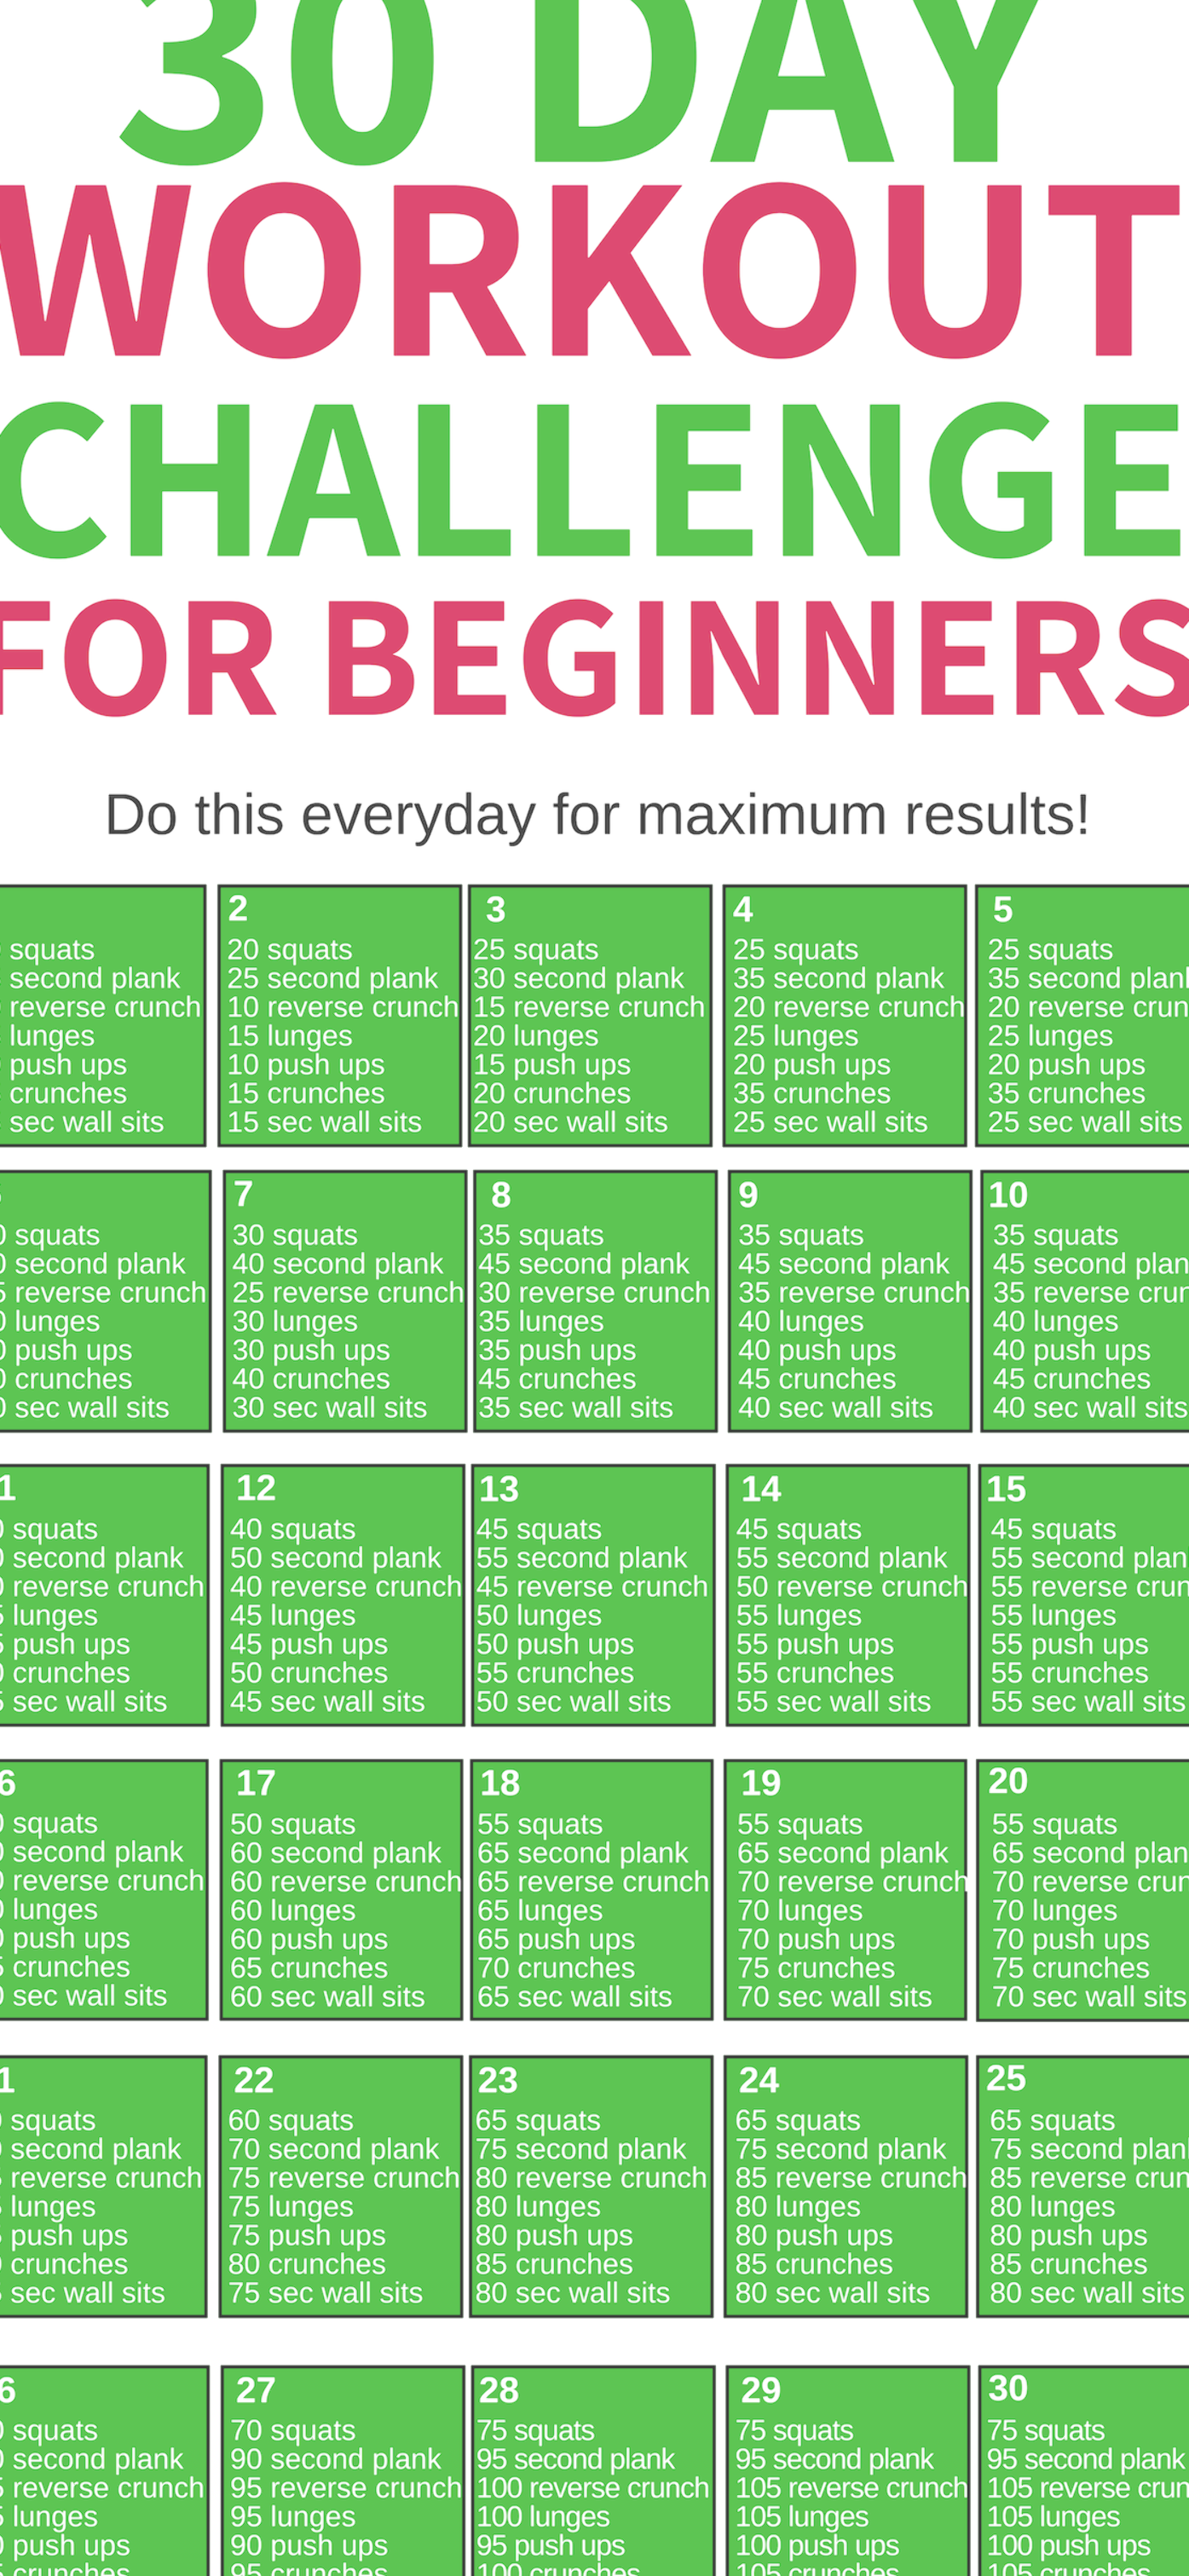 This 30 day workout challenge for beginners is THE BEST! I'm so glad I found this awesome workout ch...